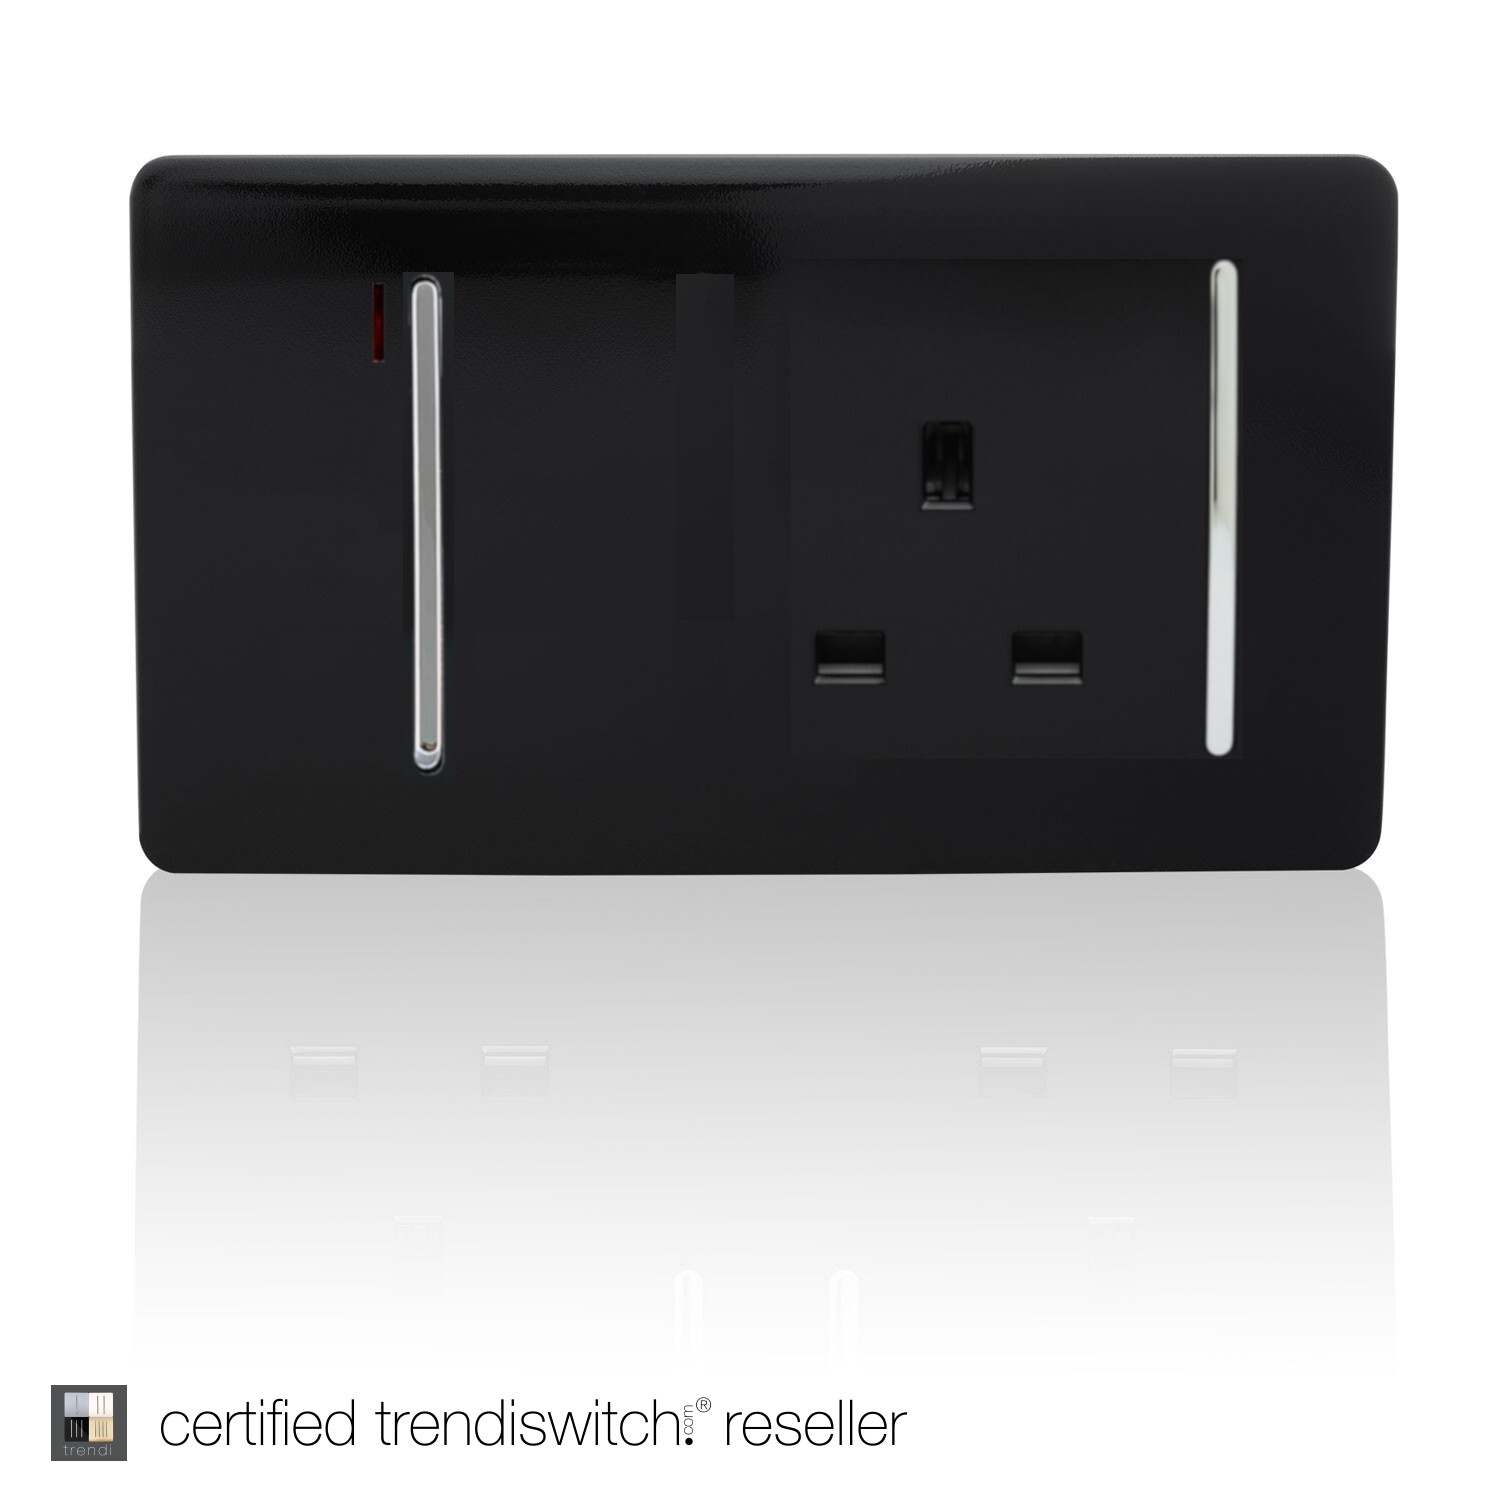 Trendi, Artistic Modern Cooker Control Panel 13amp with 45amp Switch Gloss Black Finish, BRITISH MADE, 5yrs warranty